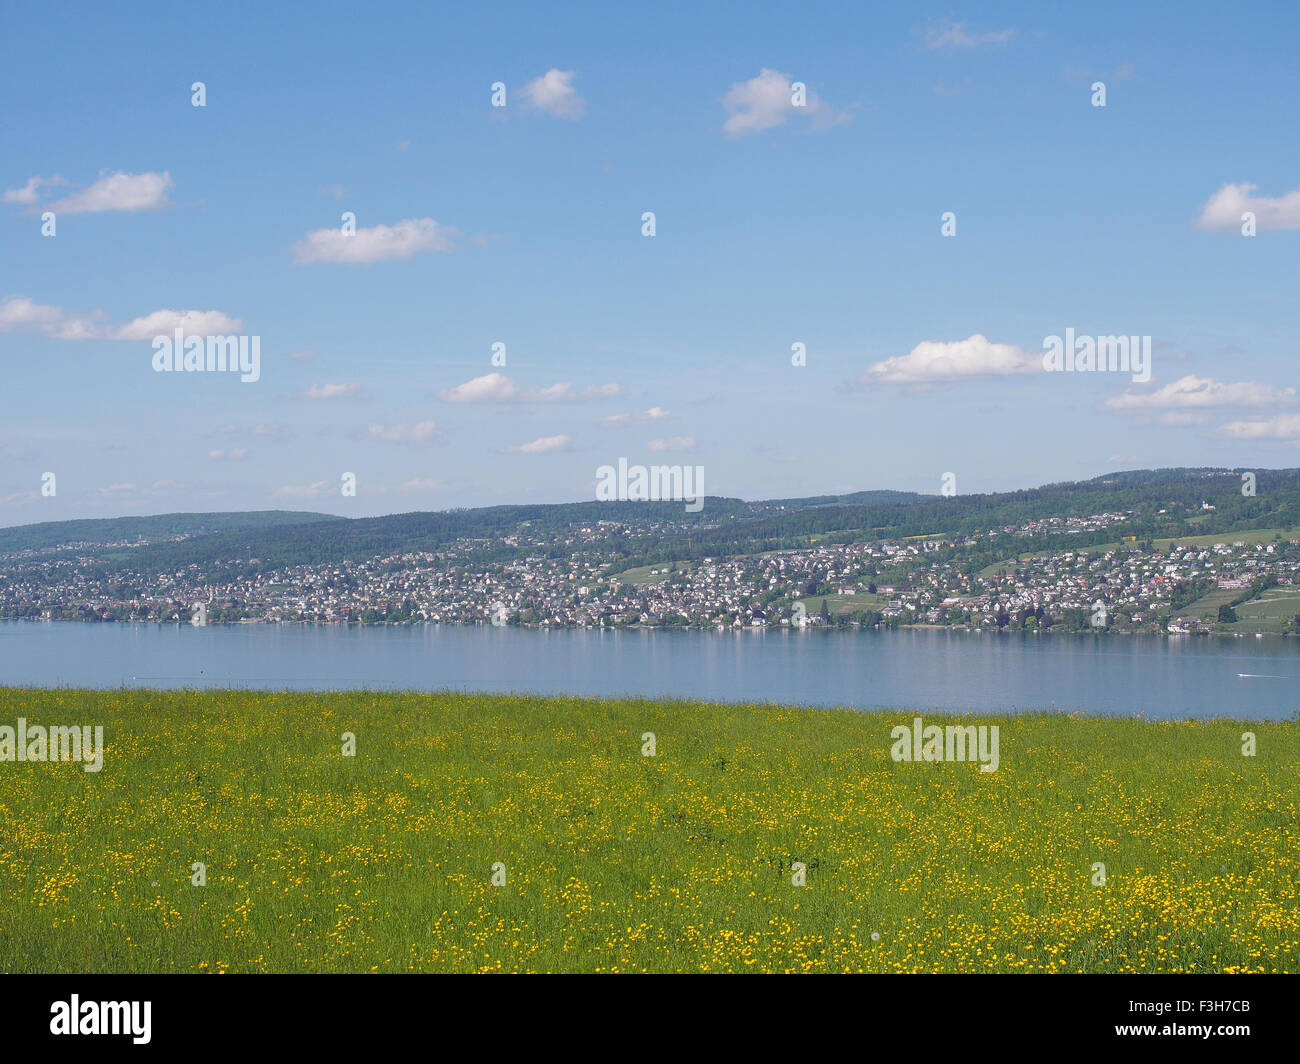 The Lake of Zurich - Stock Image